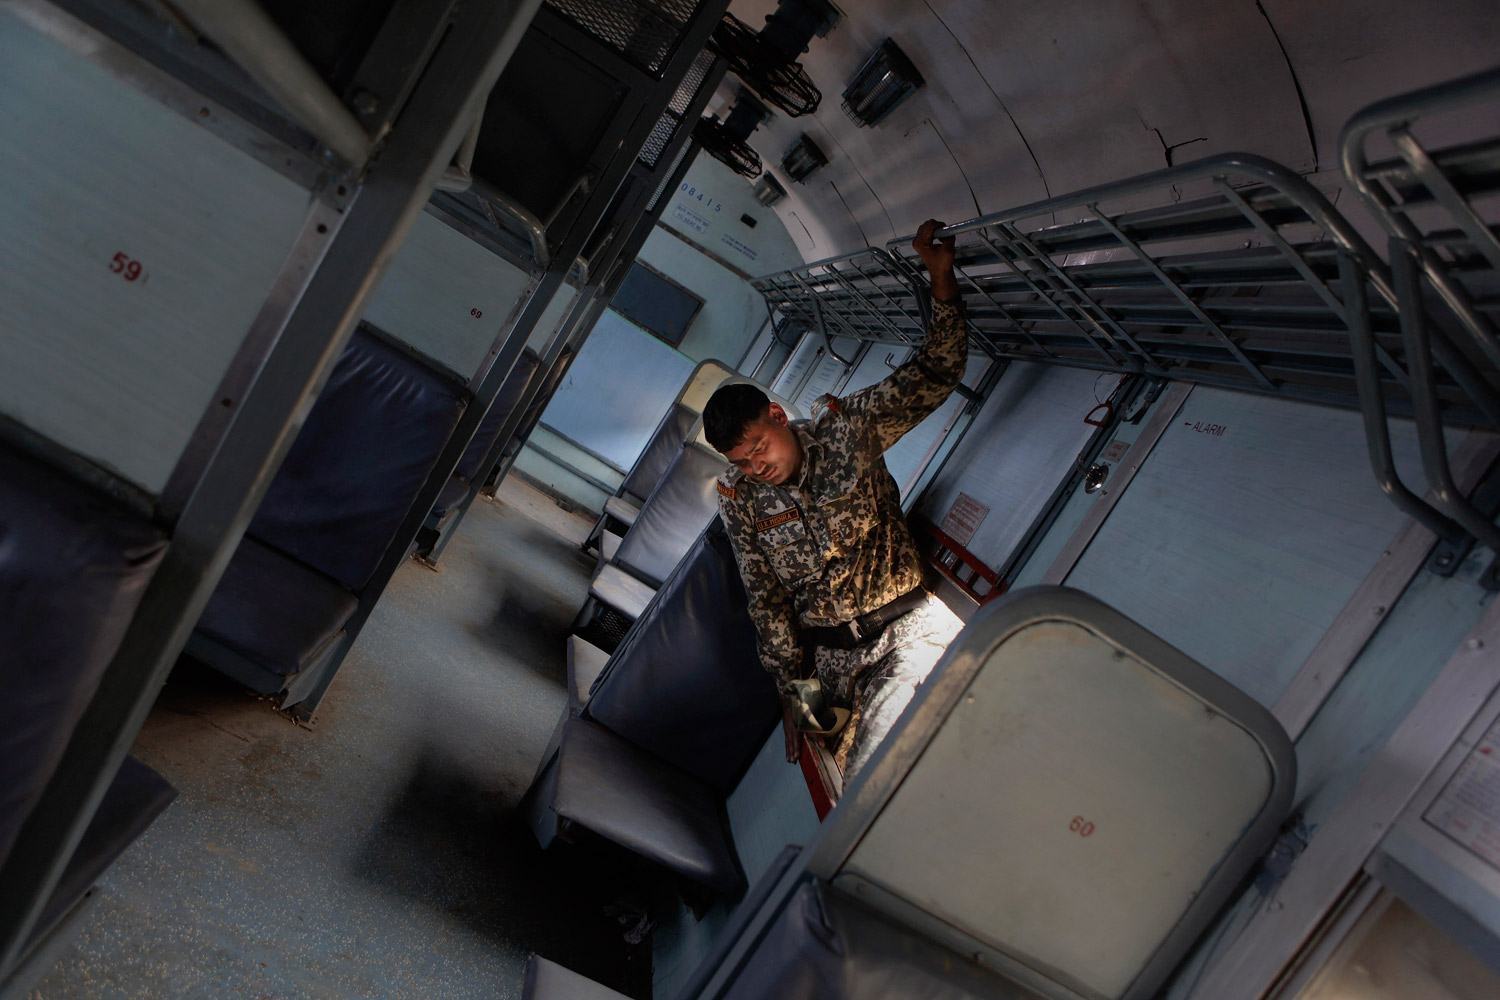 February 3, 2012. An Indian disaster response worker searches a rail car for casualties in a derailed passenger train following an accident at Sathi Sarapa village near Gauhati, India.